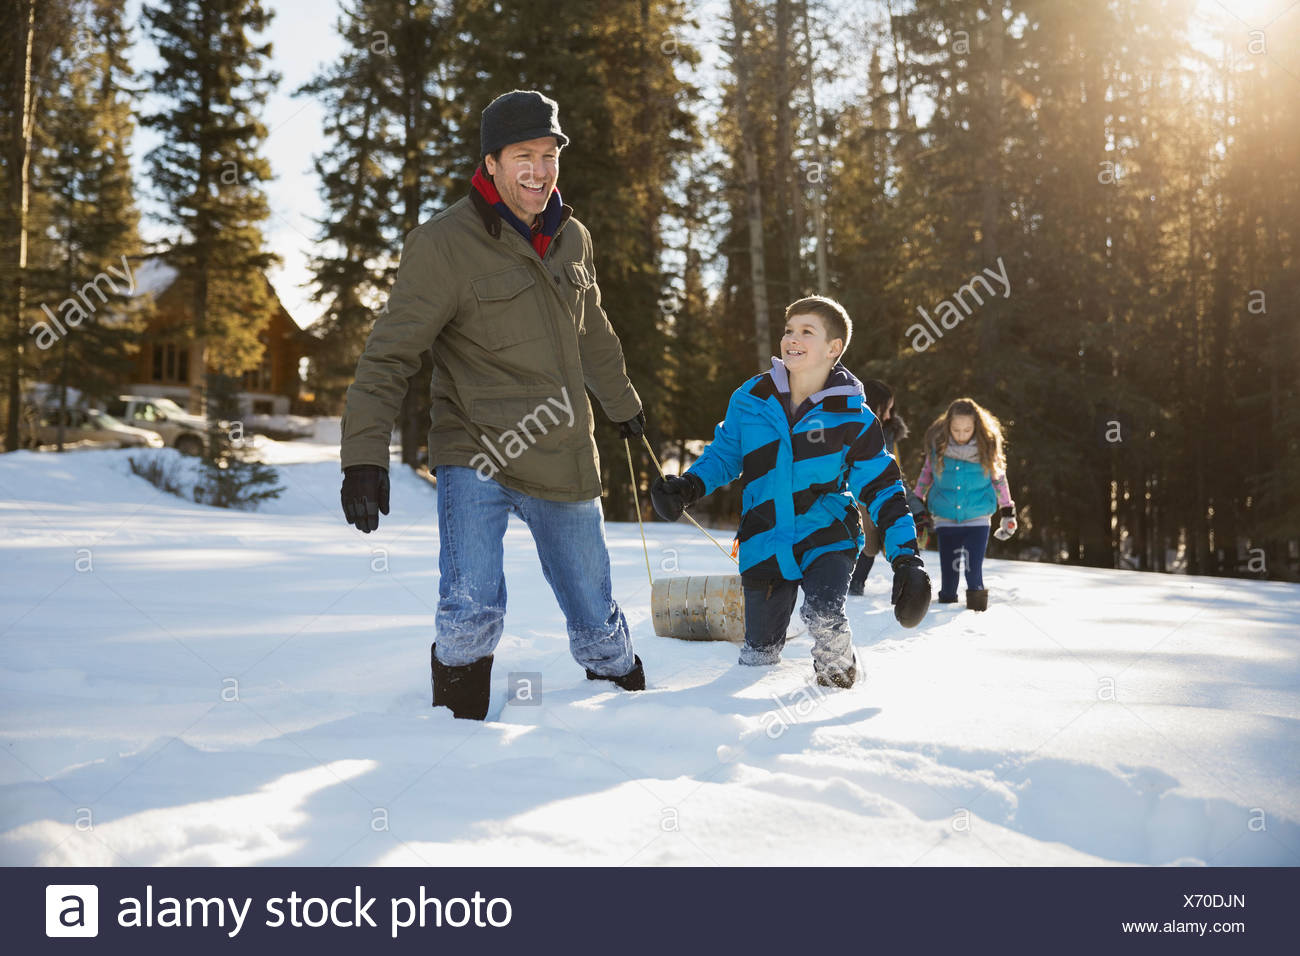 Father and son pulling toboggan in snow - Stock Image